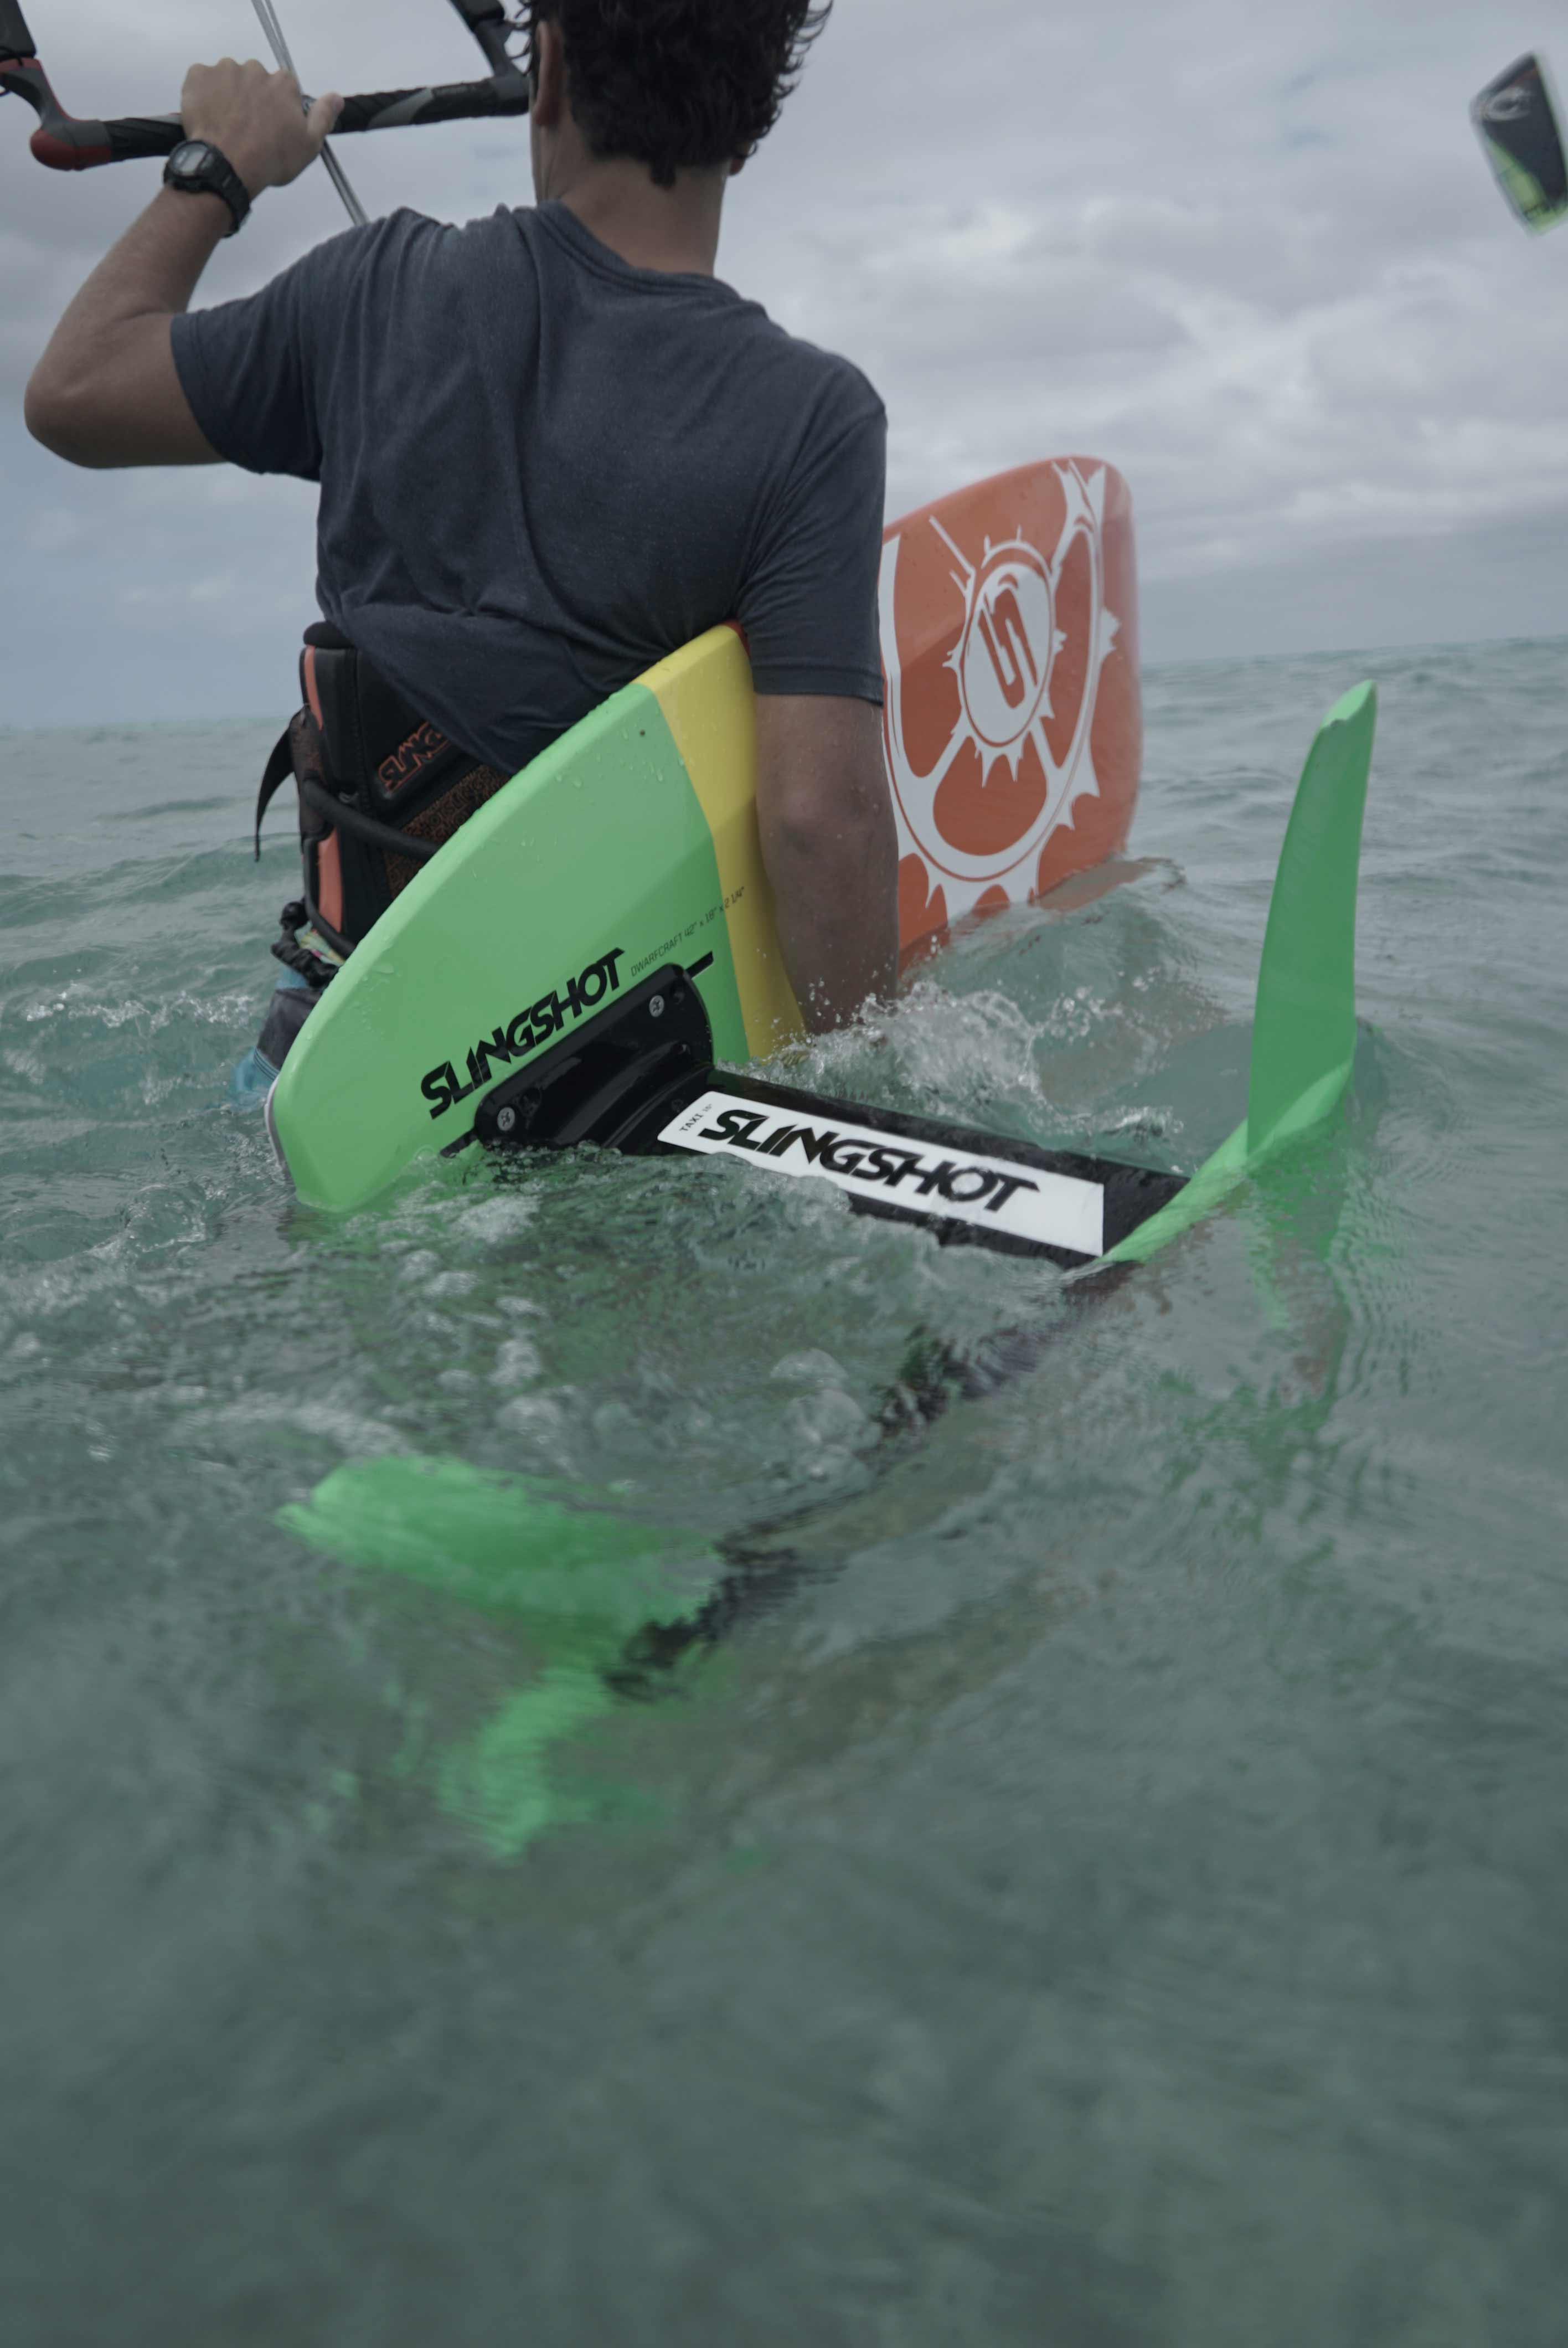 A short mast is ideal for learning hydrofoil board handling skills.